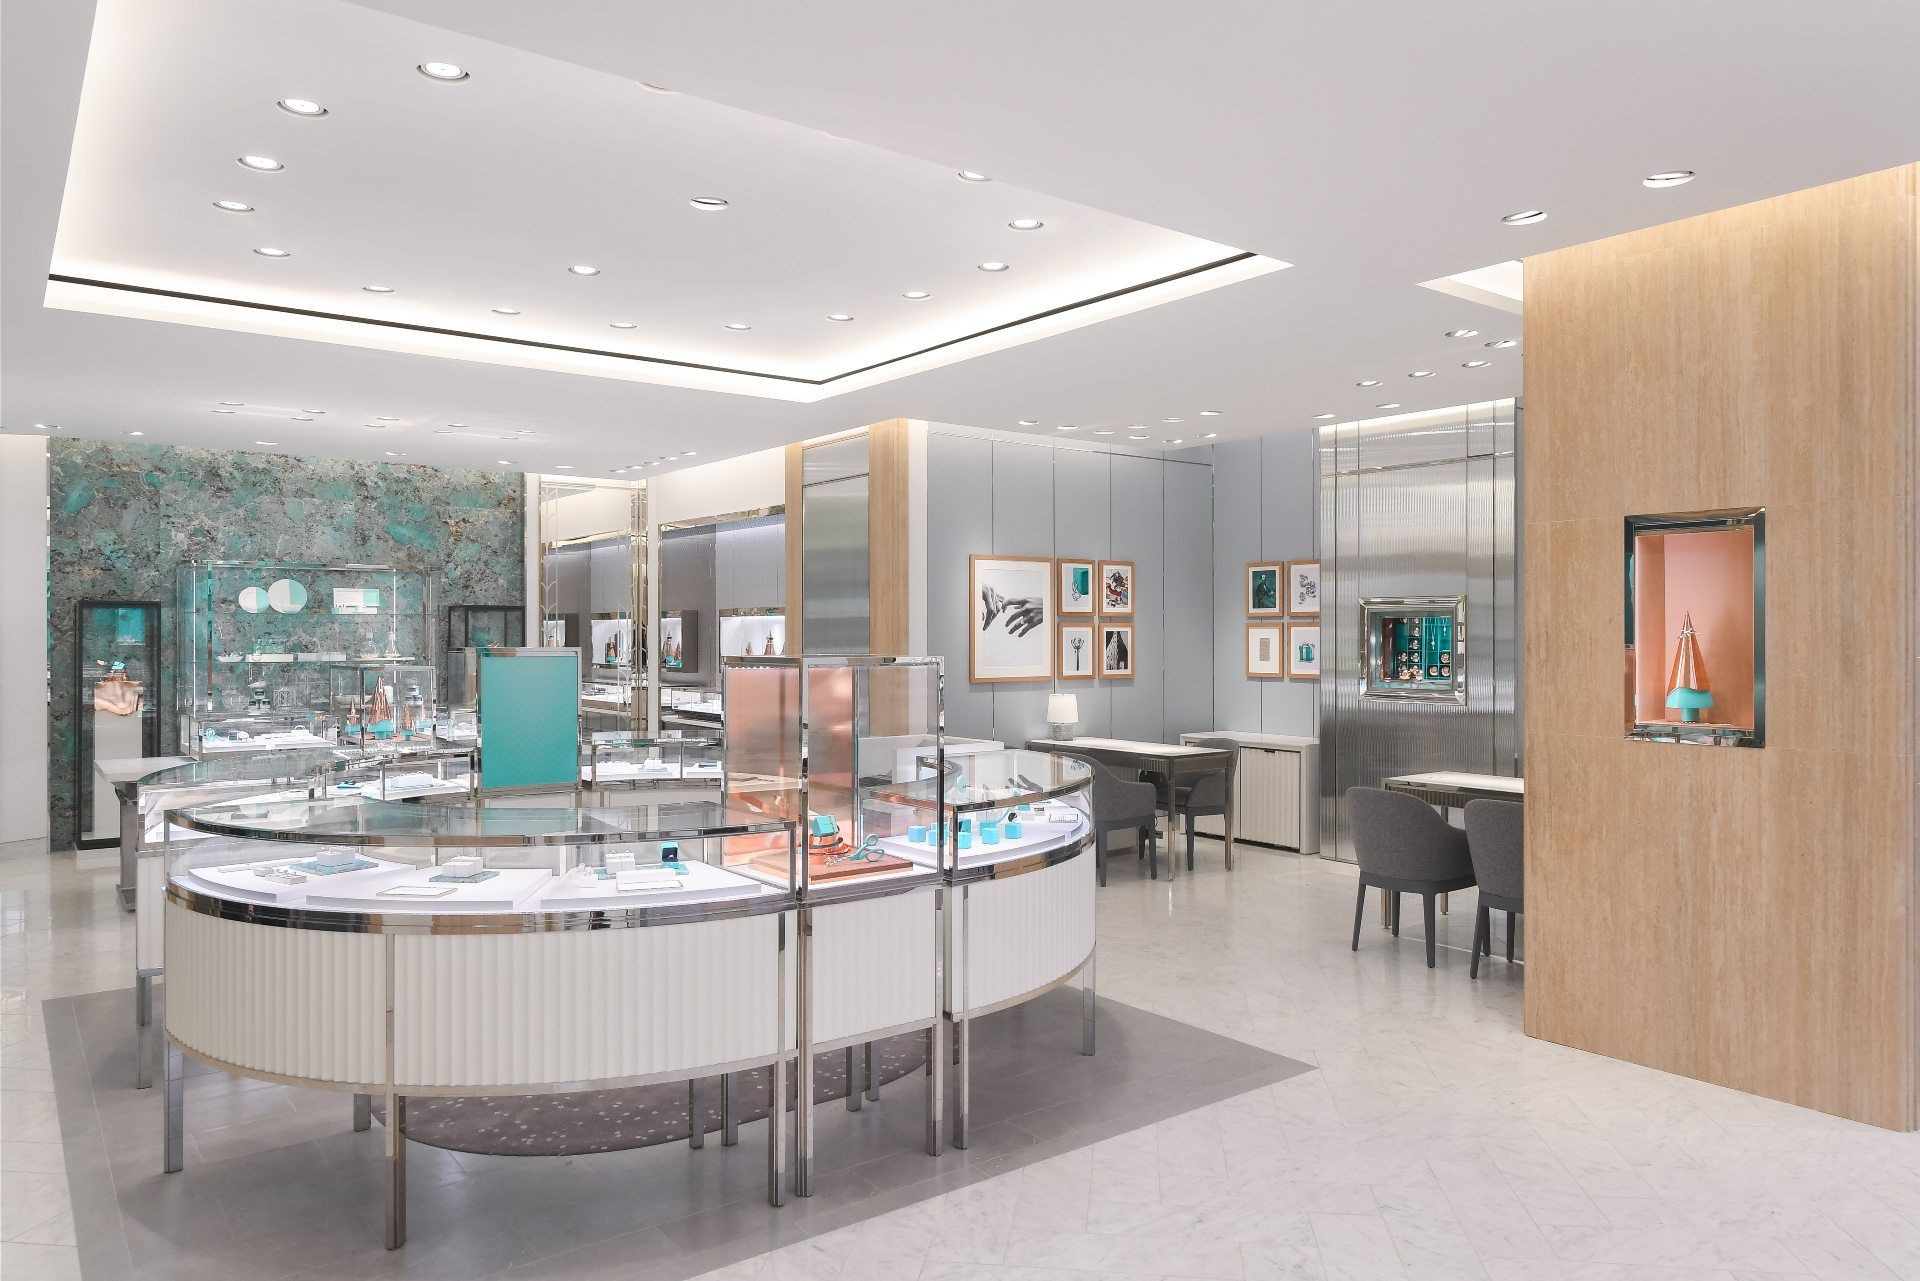 An exclusive array of home accessories is available at the Tiffany & Co boutique in Takashimaya Shopping Centre